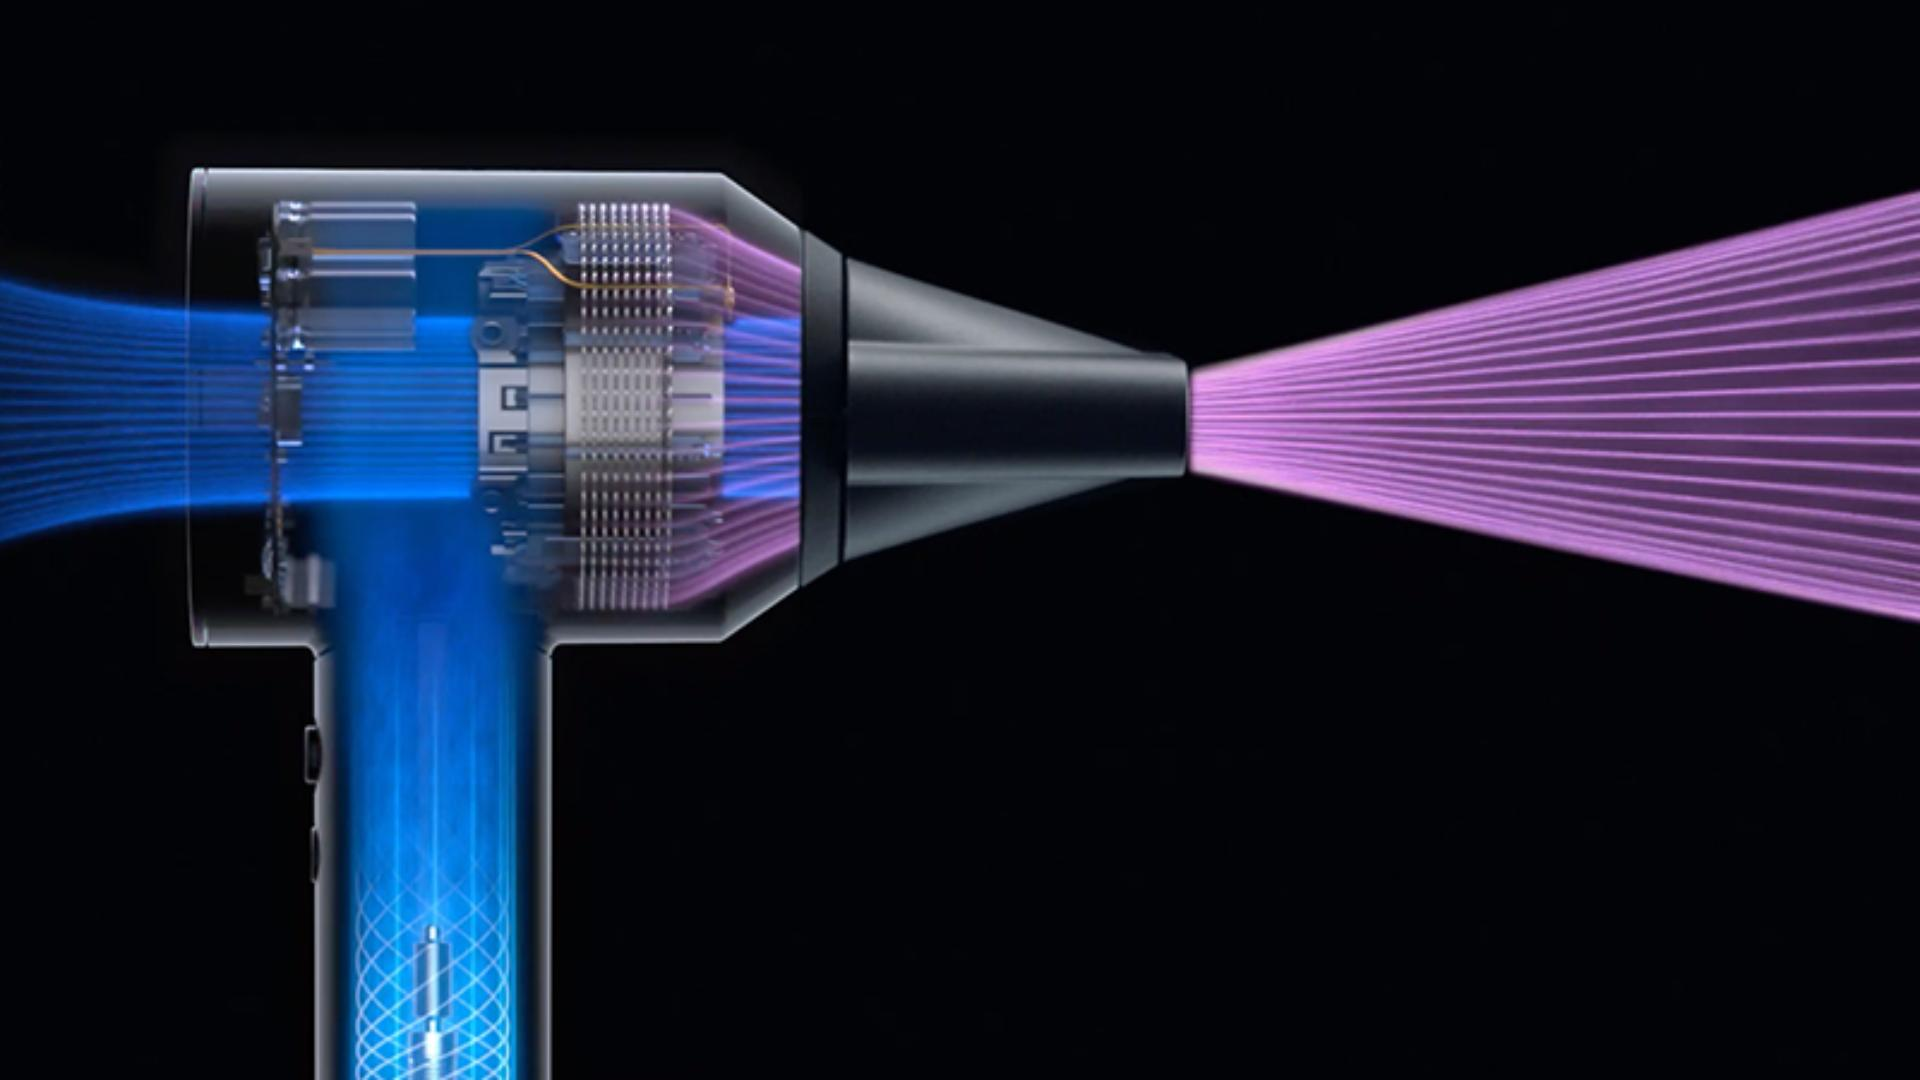 X-ray of inner workings of the Dyson Supersonic hair dryer with airflow illustrated